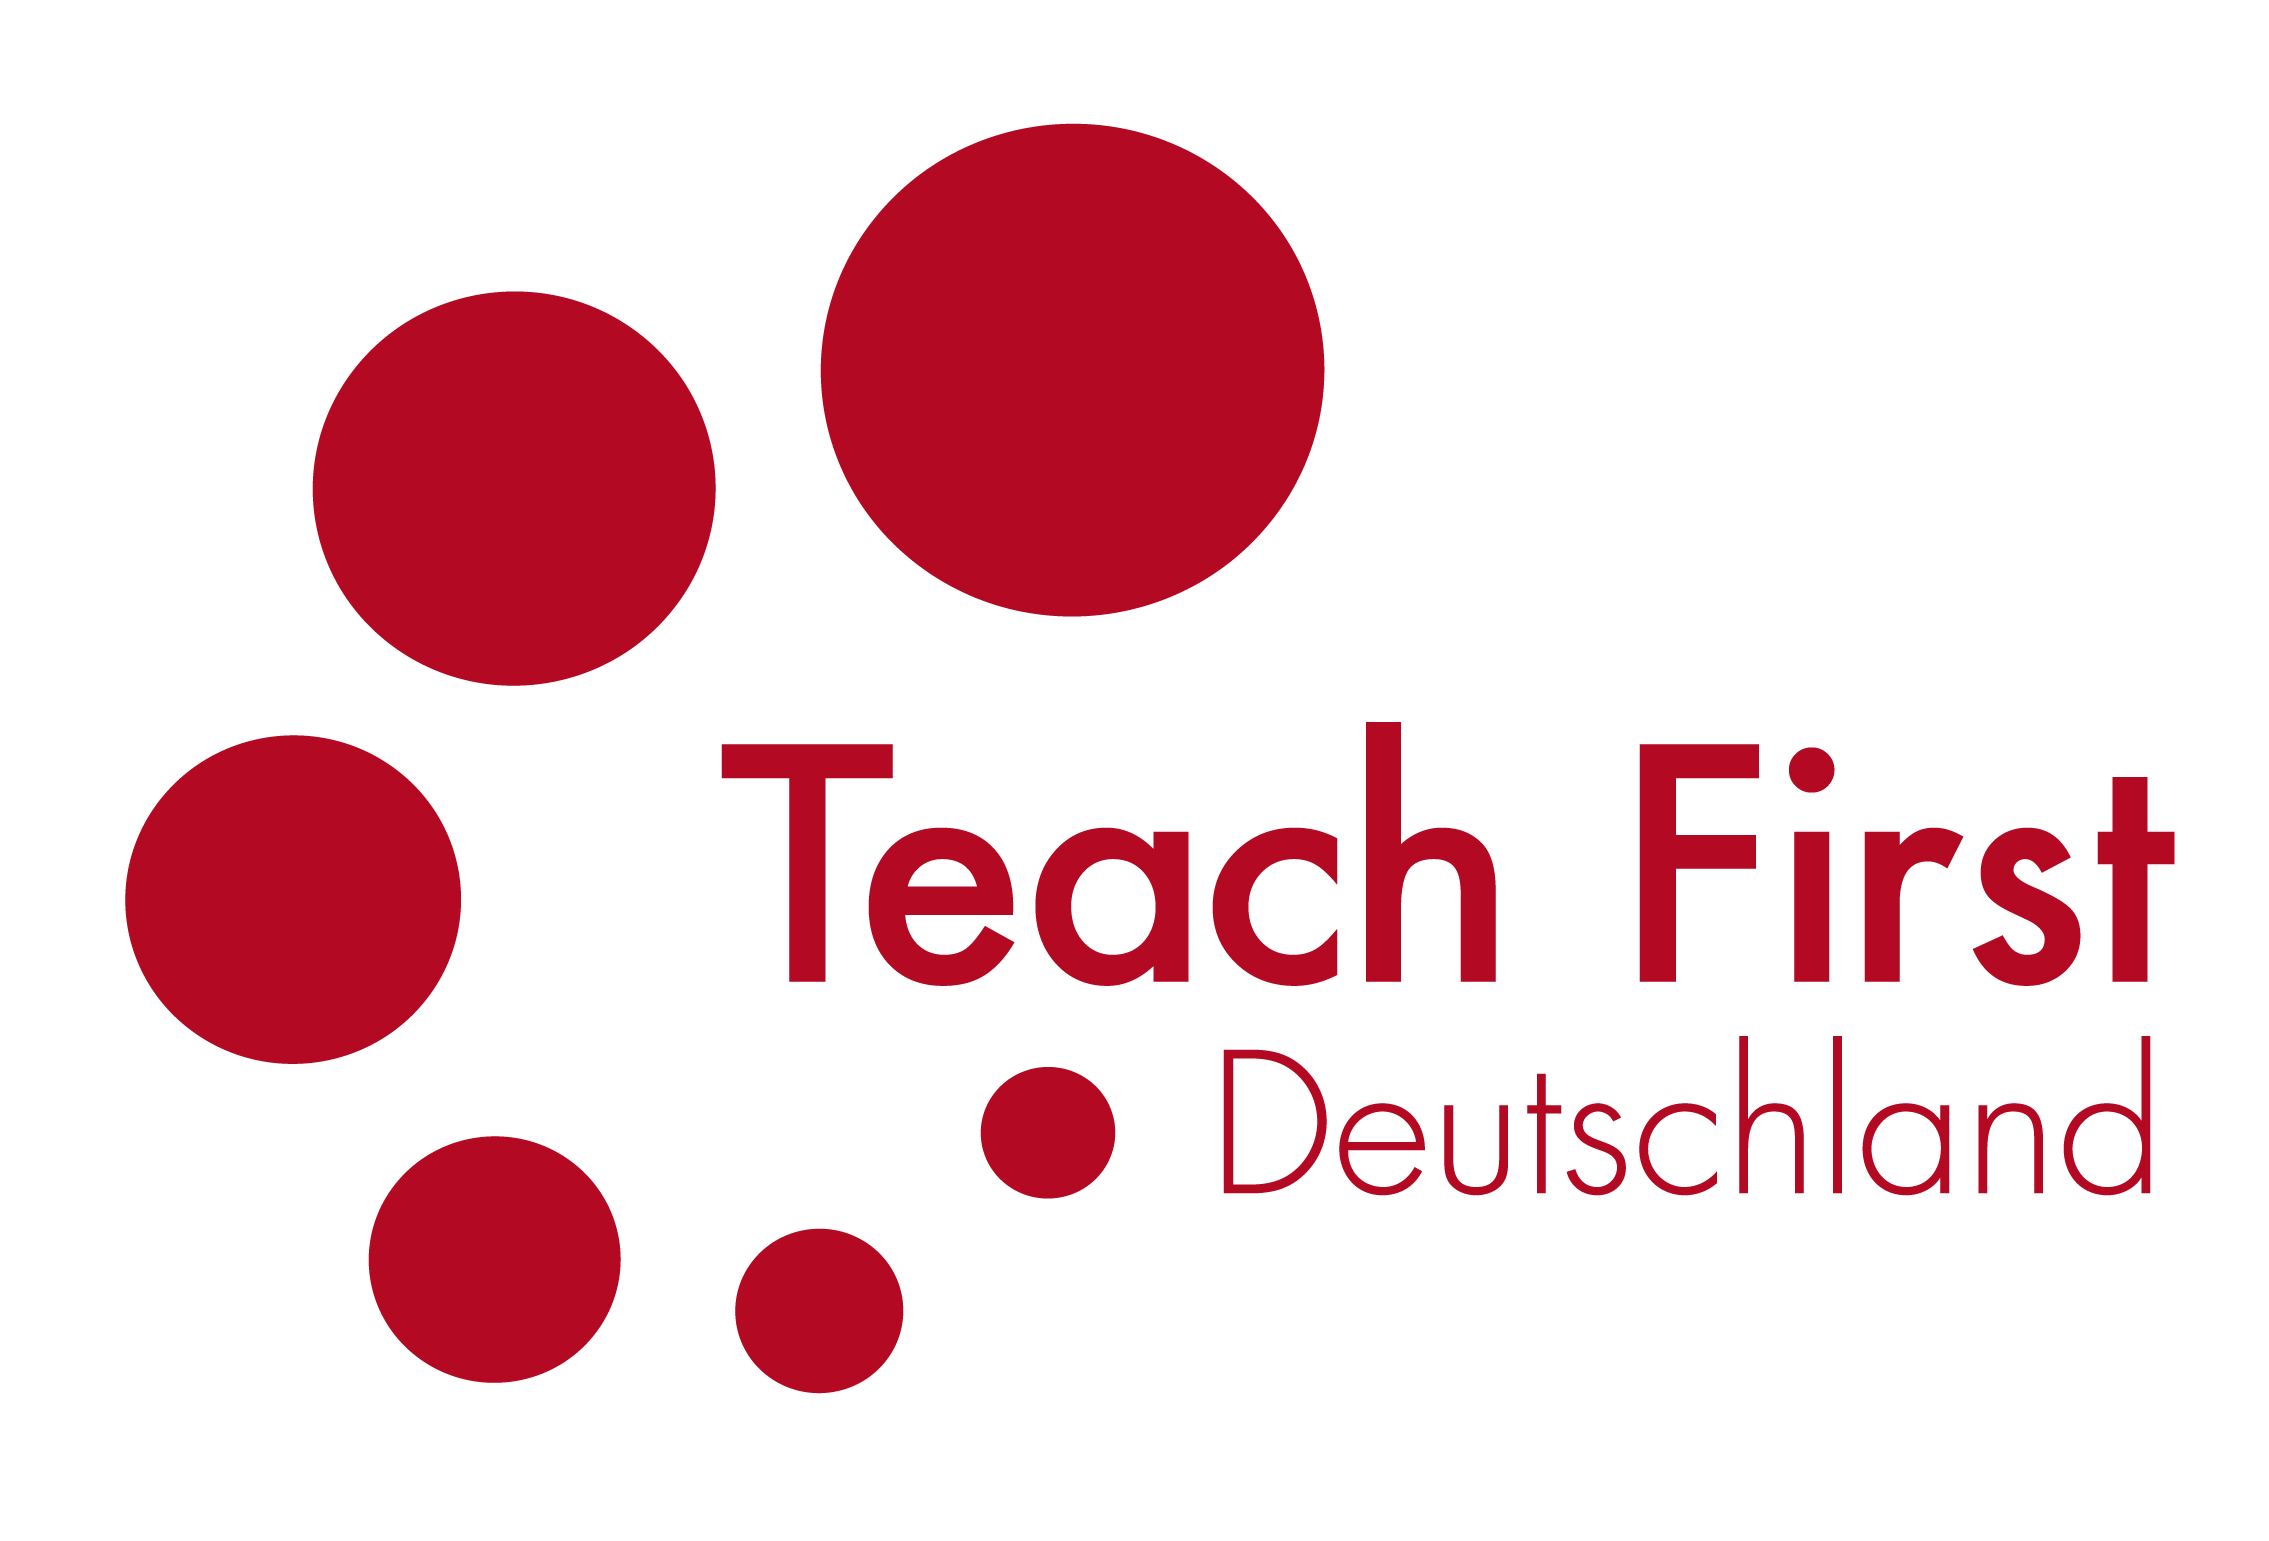 Teach First Deutschland gGmbHLogo Image